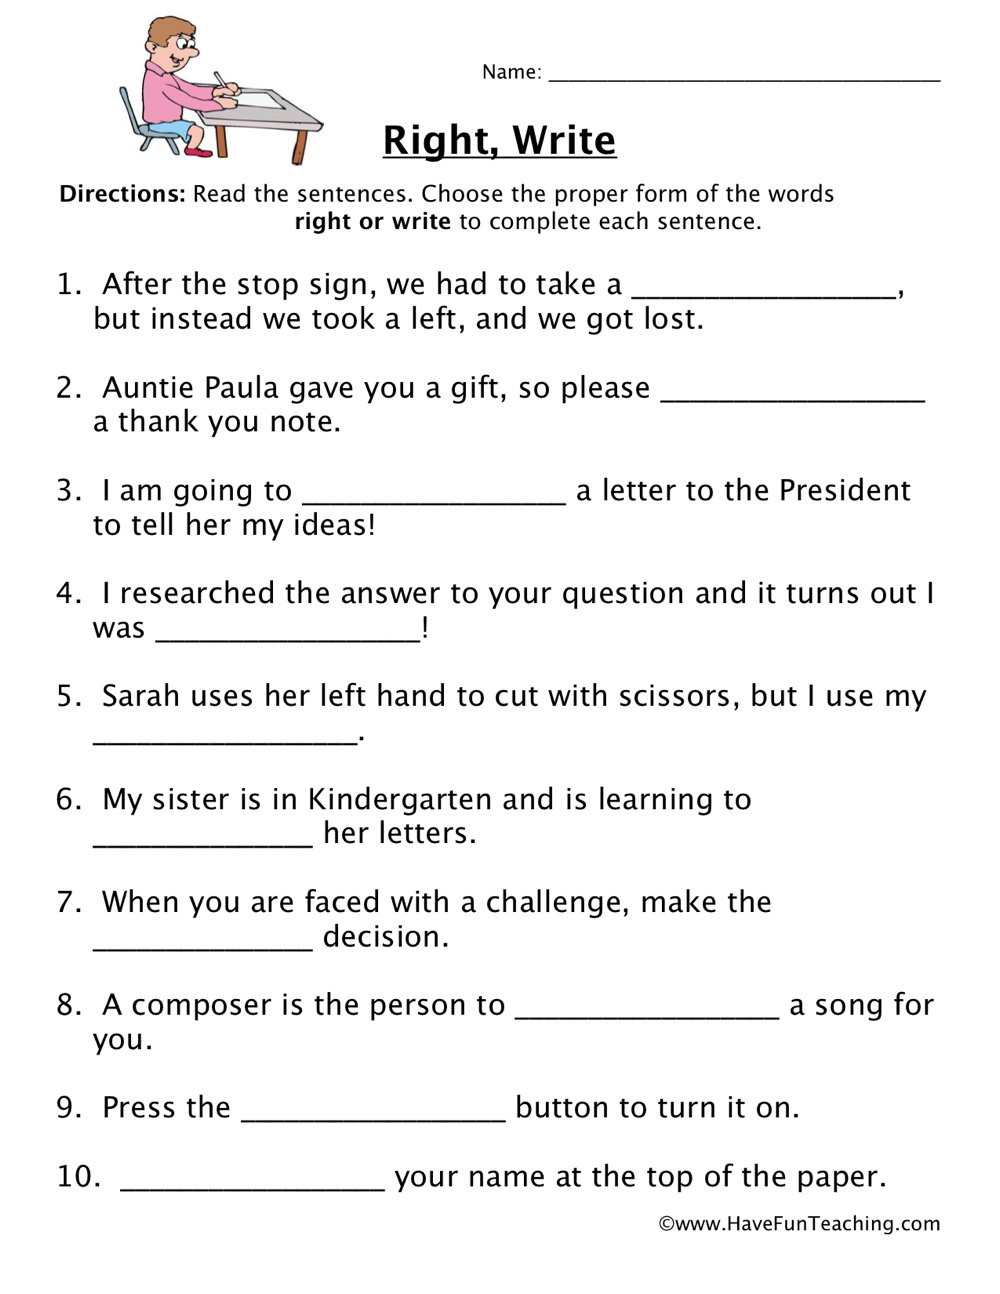 Homophones Worksheet 6th Grade Right Write Homophones Worksheet